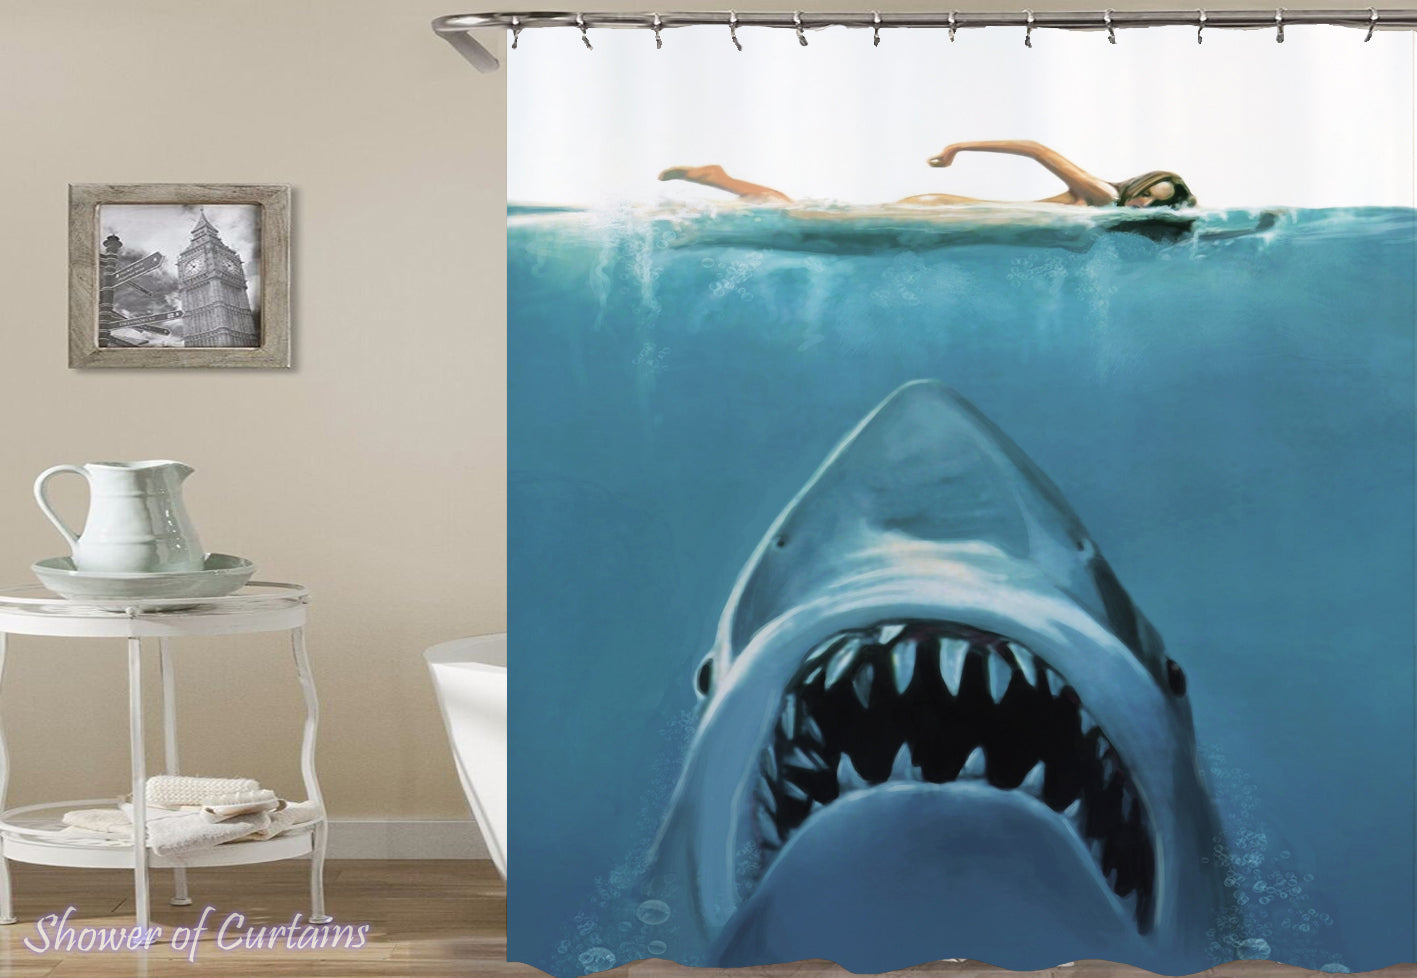 Shower Curtains | Shark Attack! – Shower of Curtains